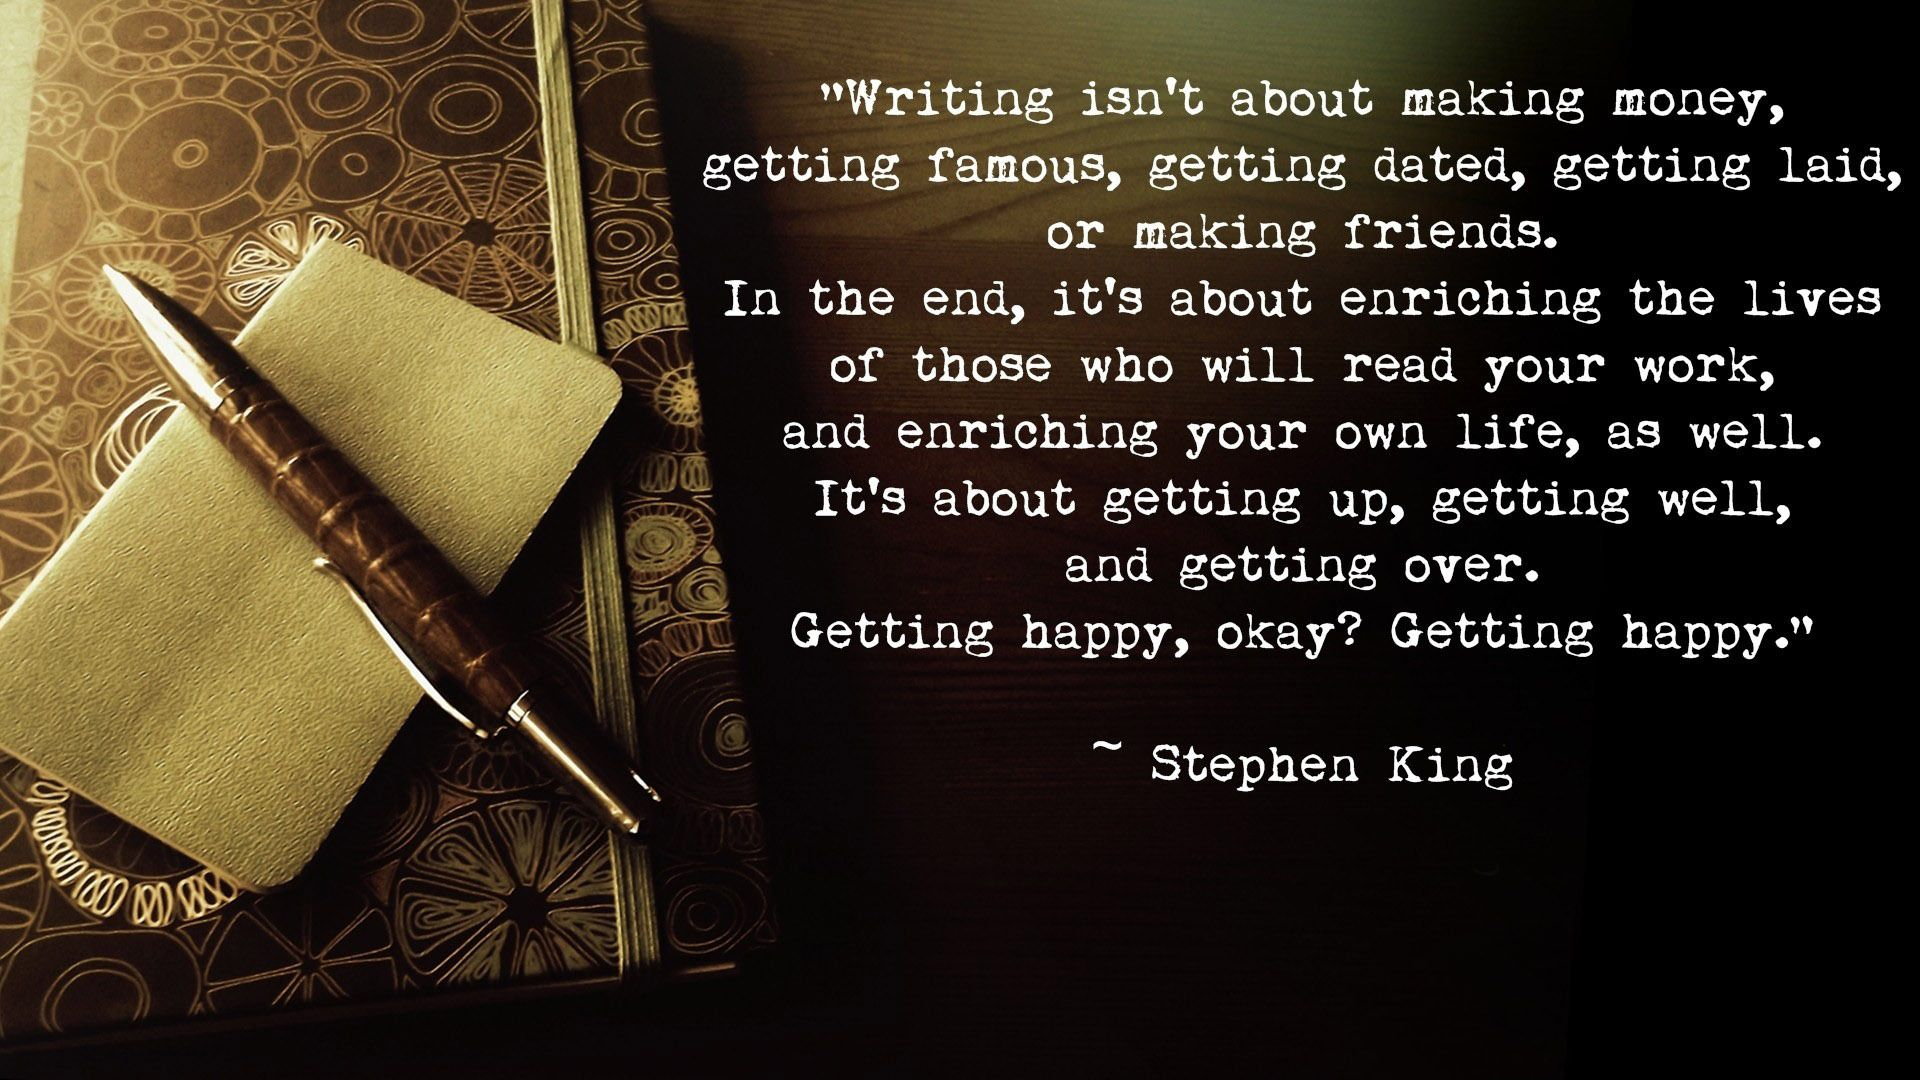 just finished reading on writing by stephen king! what a great read